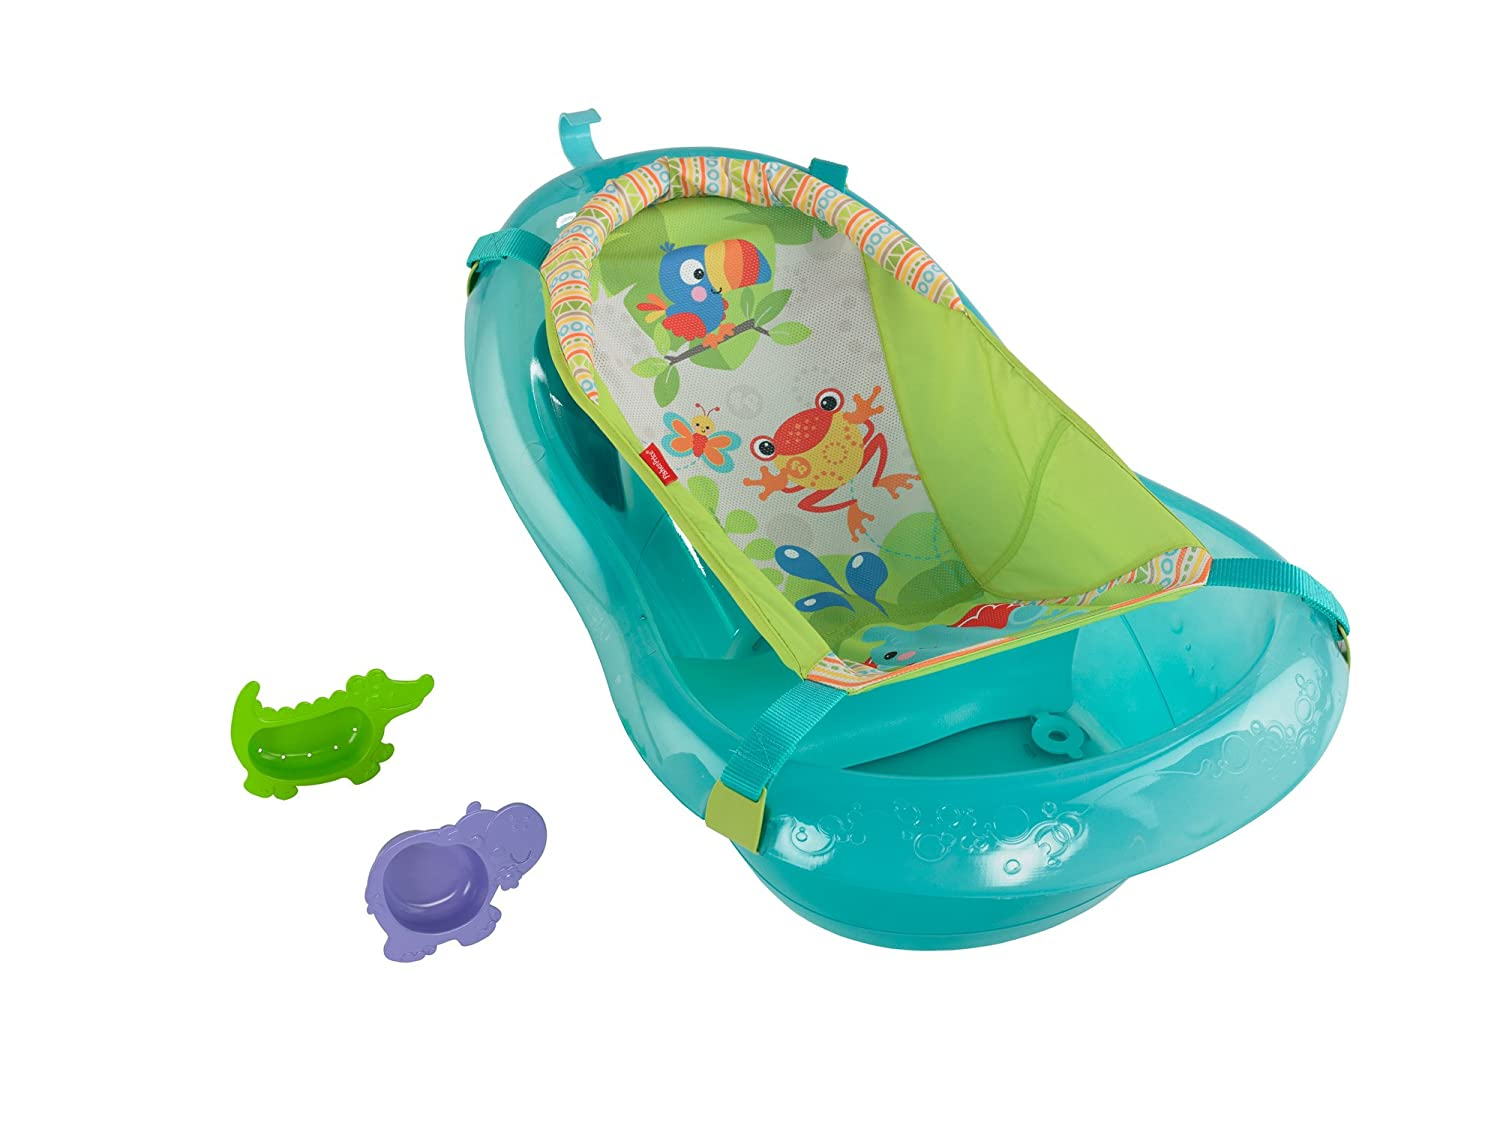 Baby bath chairs for the tub - Amazon Com Fisher Price Bath Tub Rainforest Friends Baby Bathing Seats And Tubs Baby